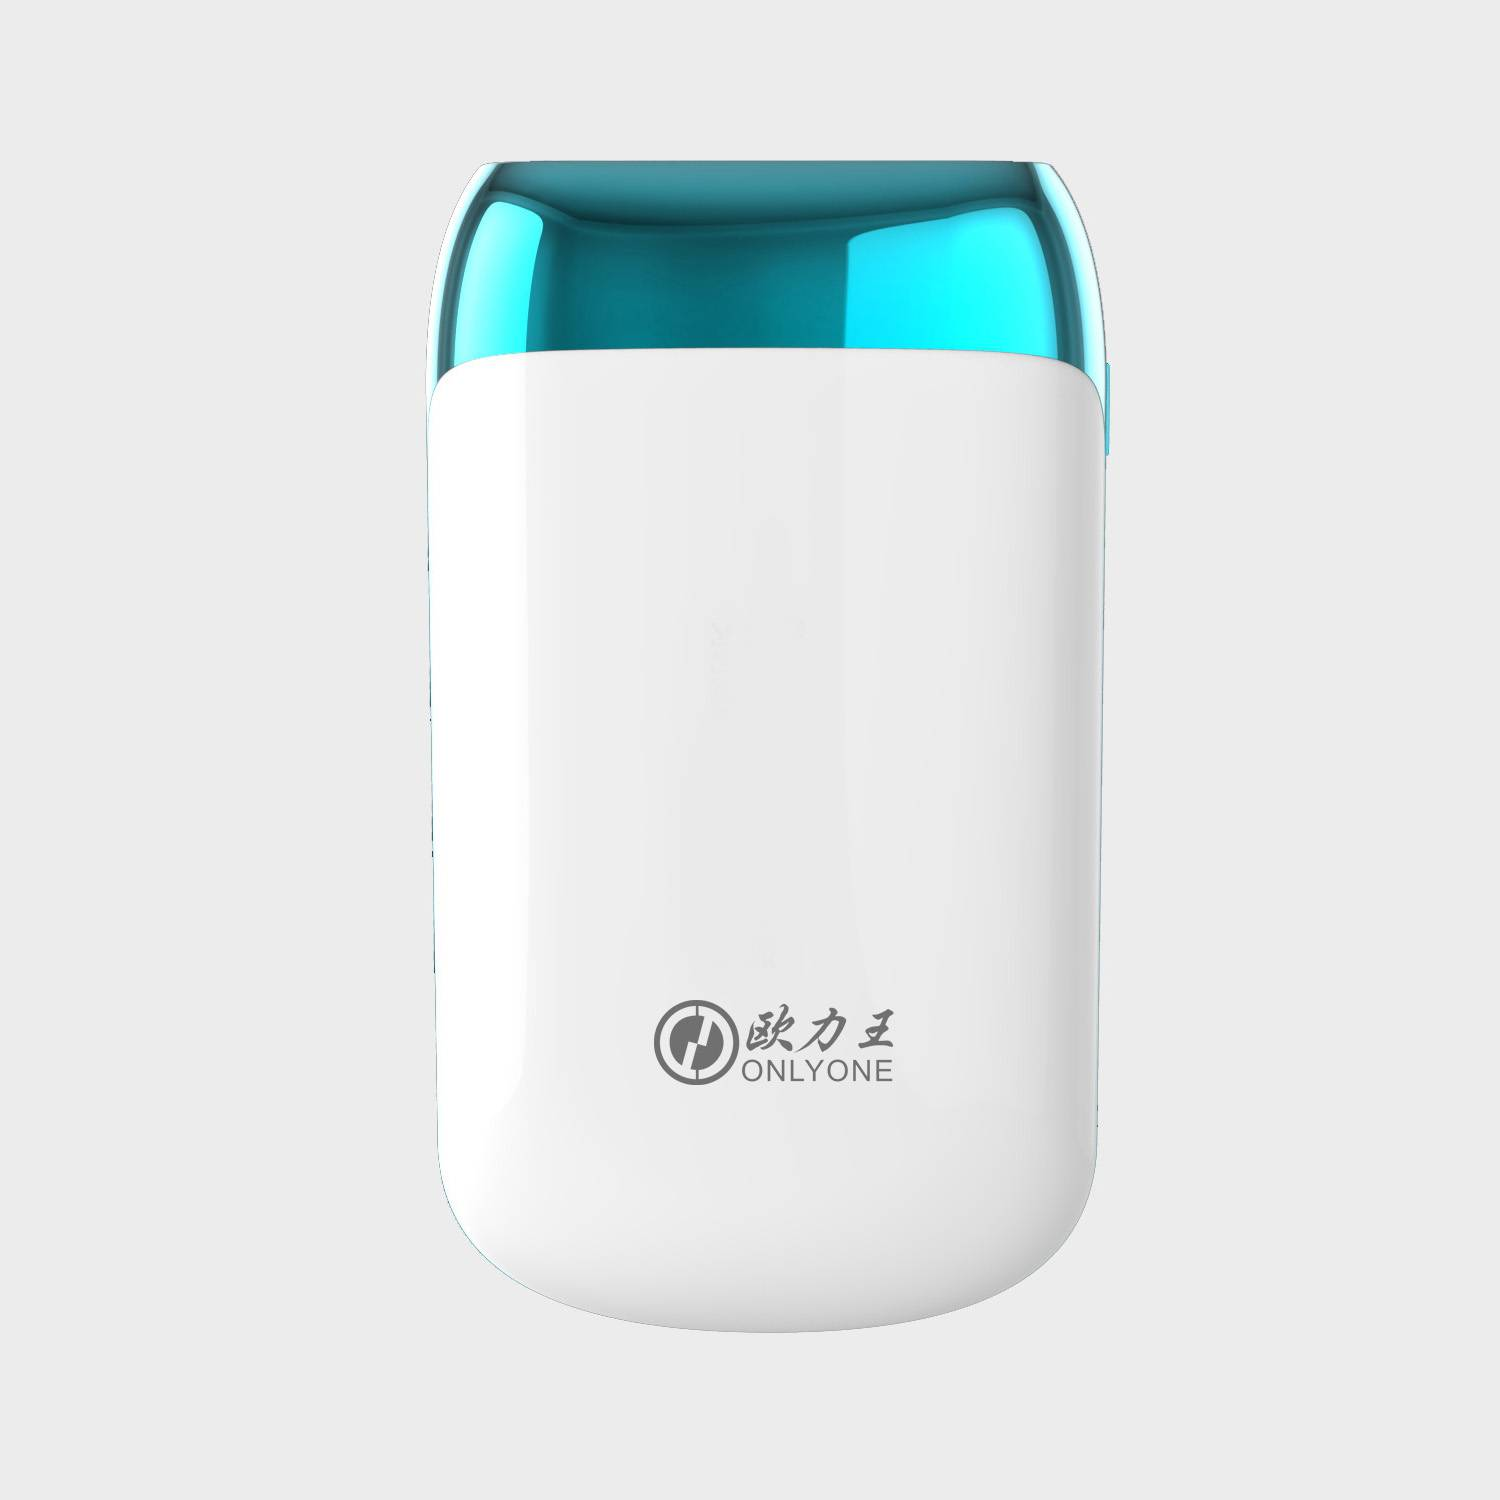 Newest rechargeable mobile phone charger dual USB output power bank 7800mah